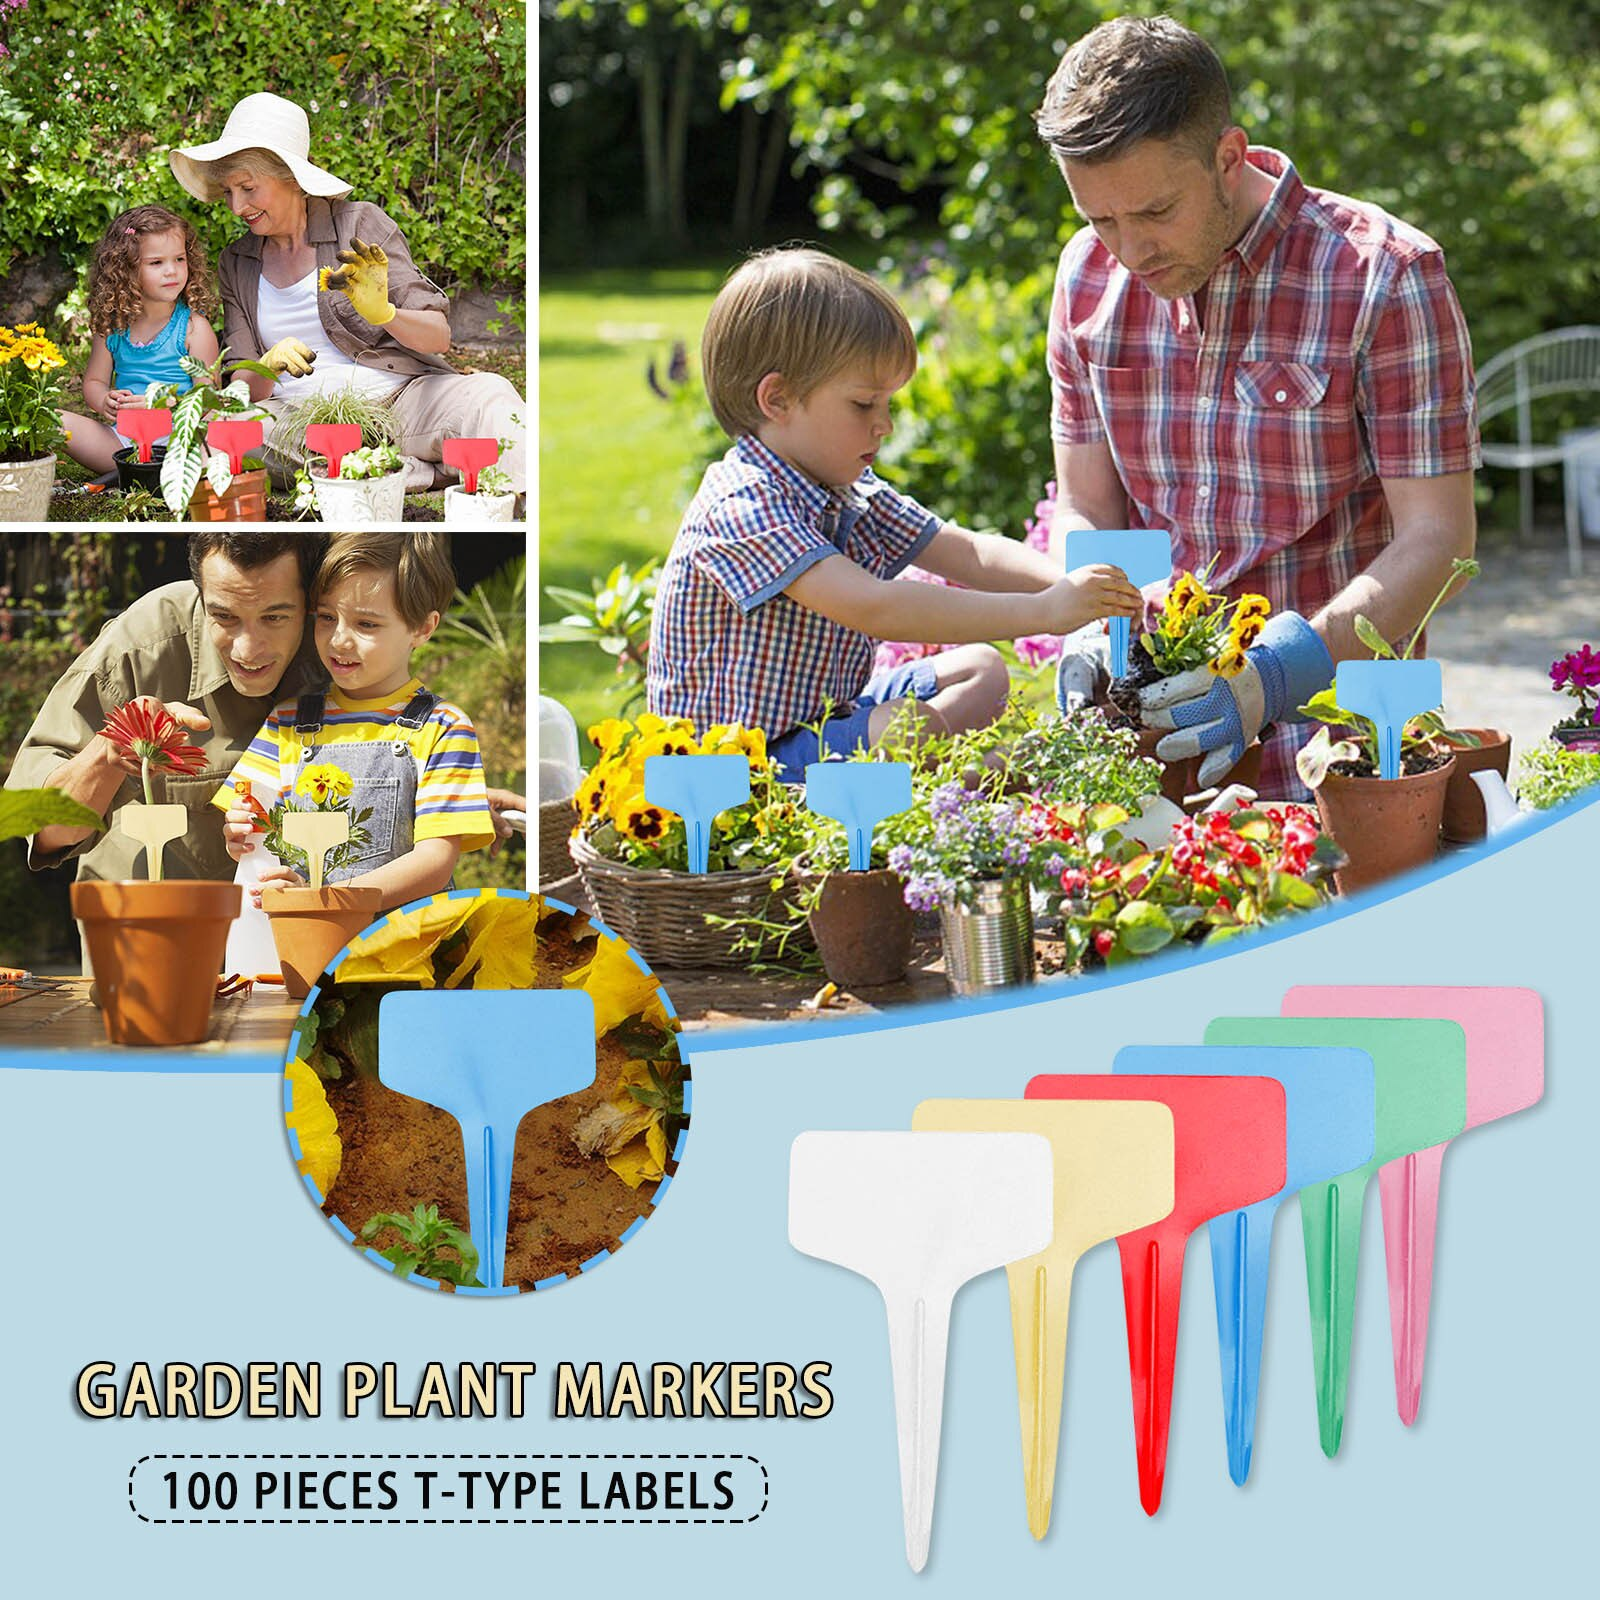 100 Pcs/lot Reusable Plastic Plant Markers T-type Tags Nursery Garden Decor Tags for Plants Flower Pot Tags Garden Supplies